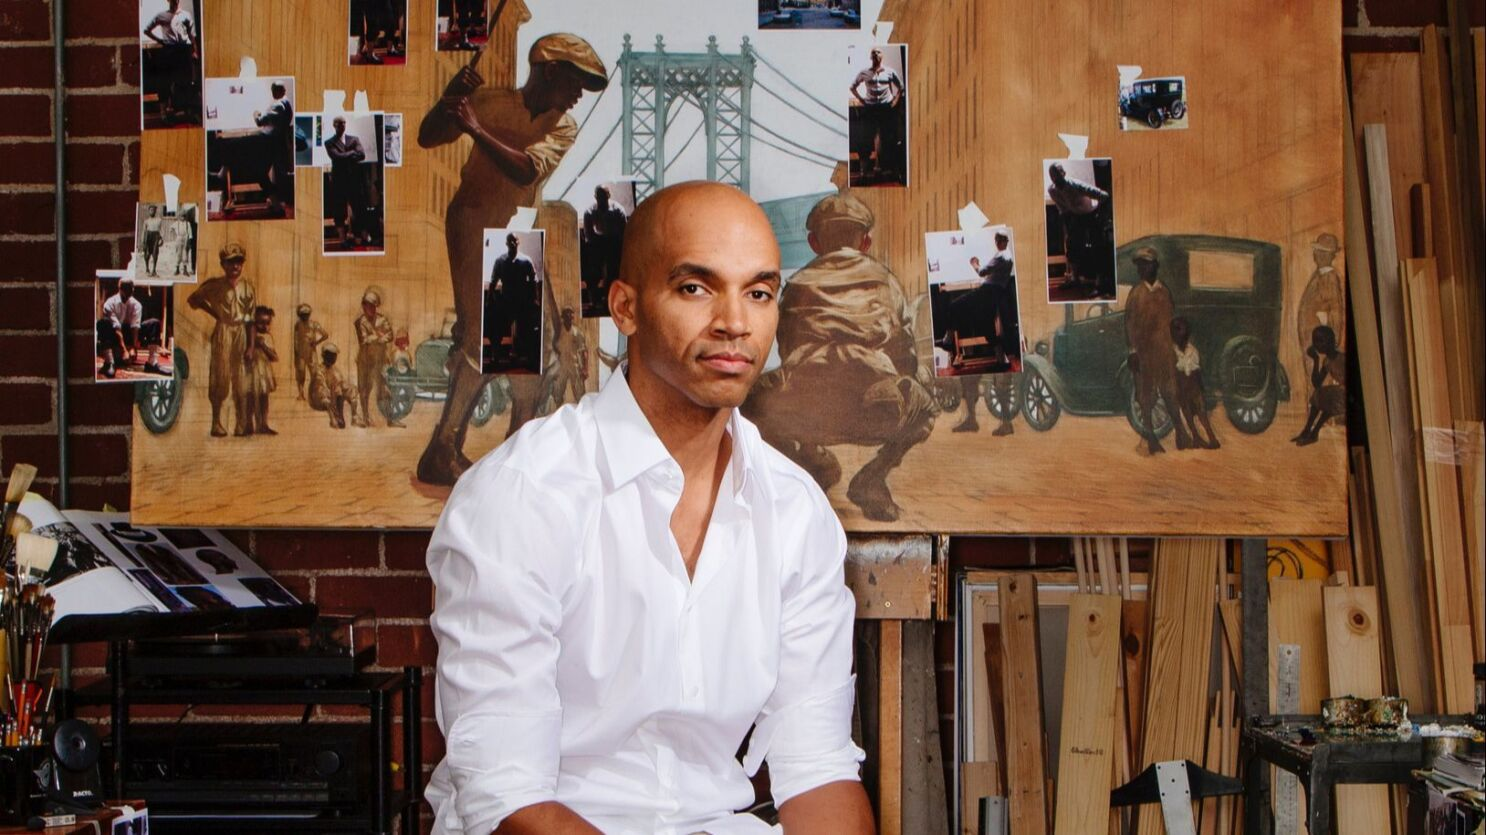 Kadir Nelson tells memorable stories on variety of canvases - The San Diego Union-Tribune